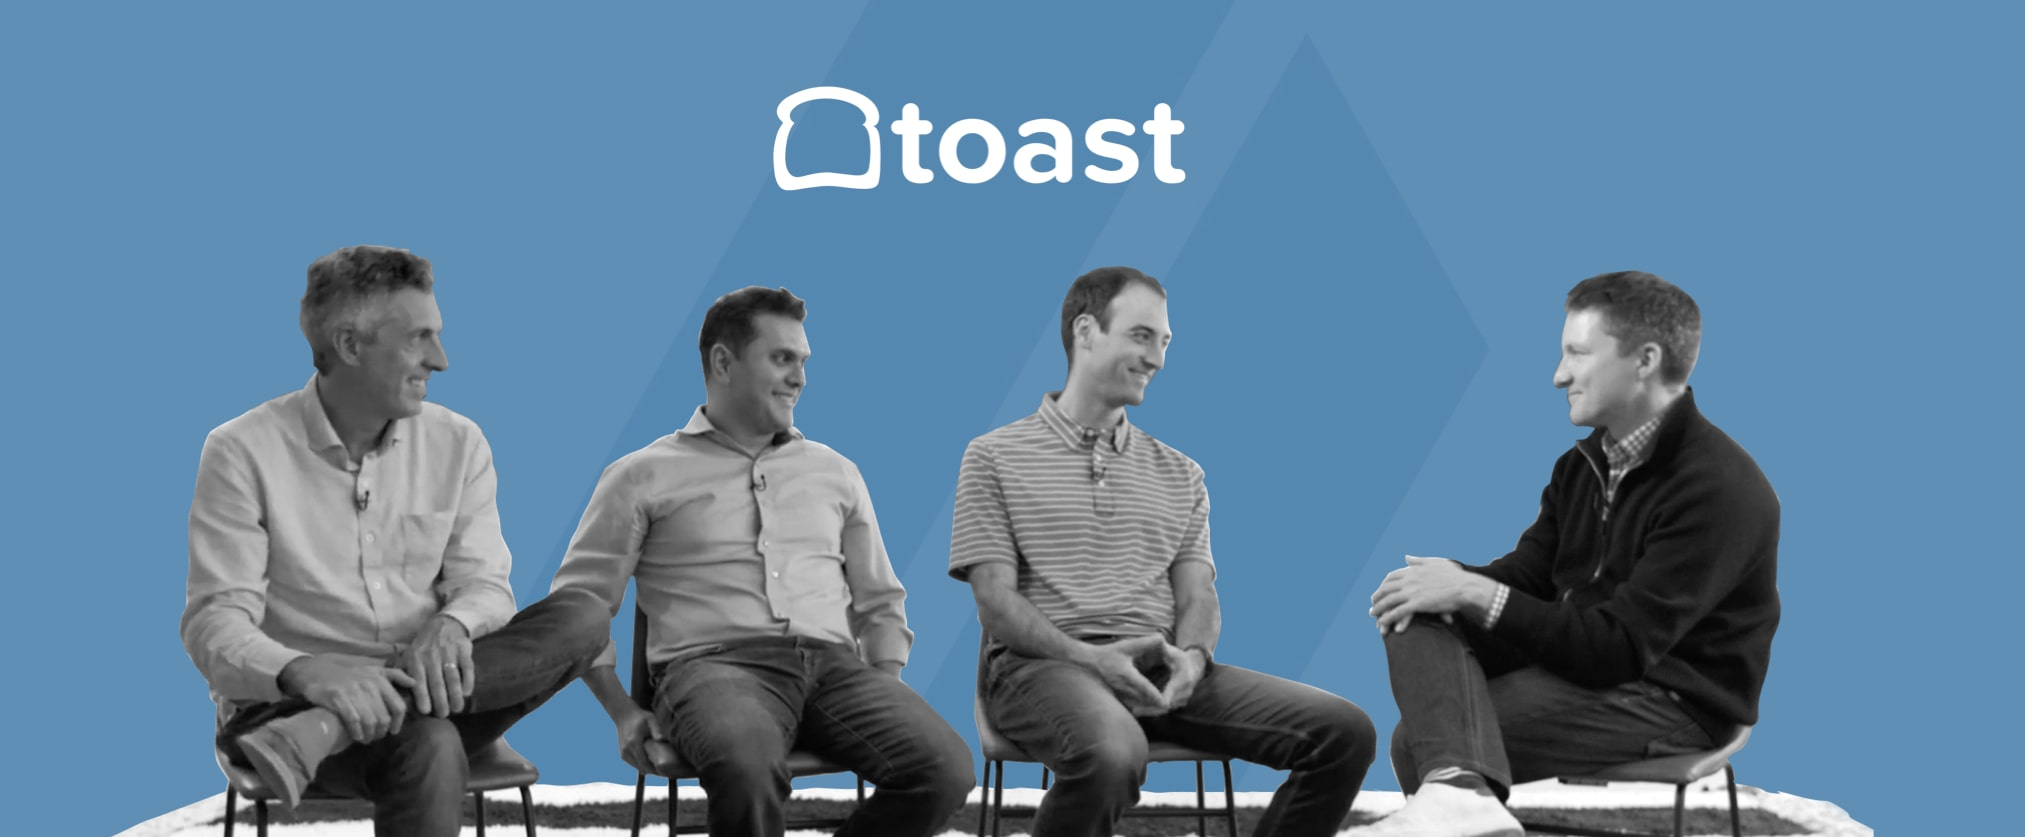 Image of 4 men sitting in chairs having a conversation. Logo of Toast in background.